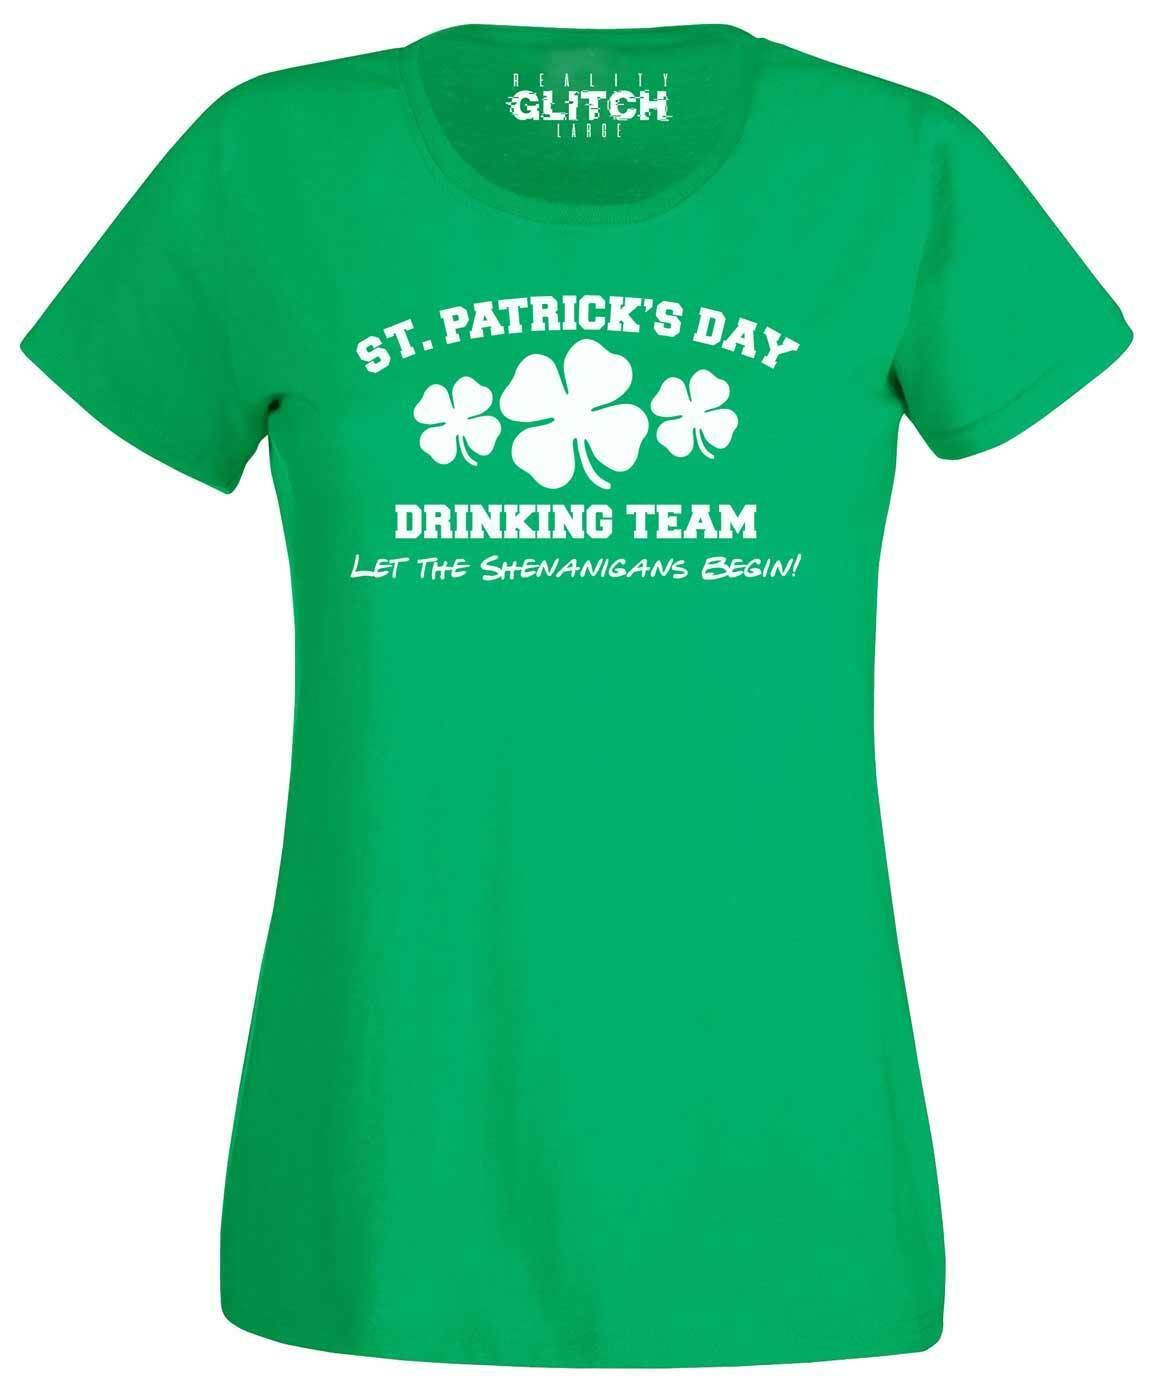 Men/'s T-shirt funny St Irish Drinking Team Green Patrick/'s Day tee